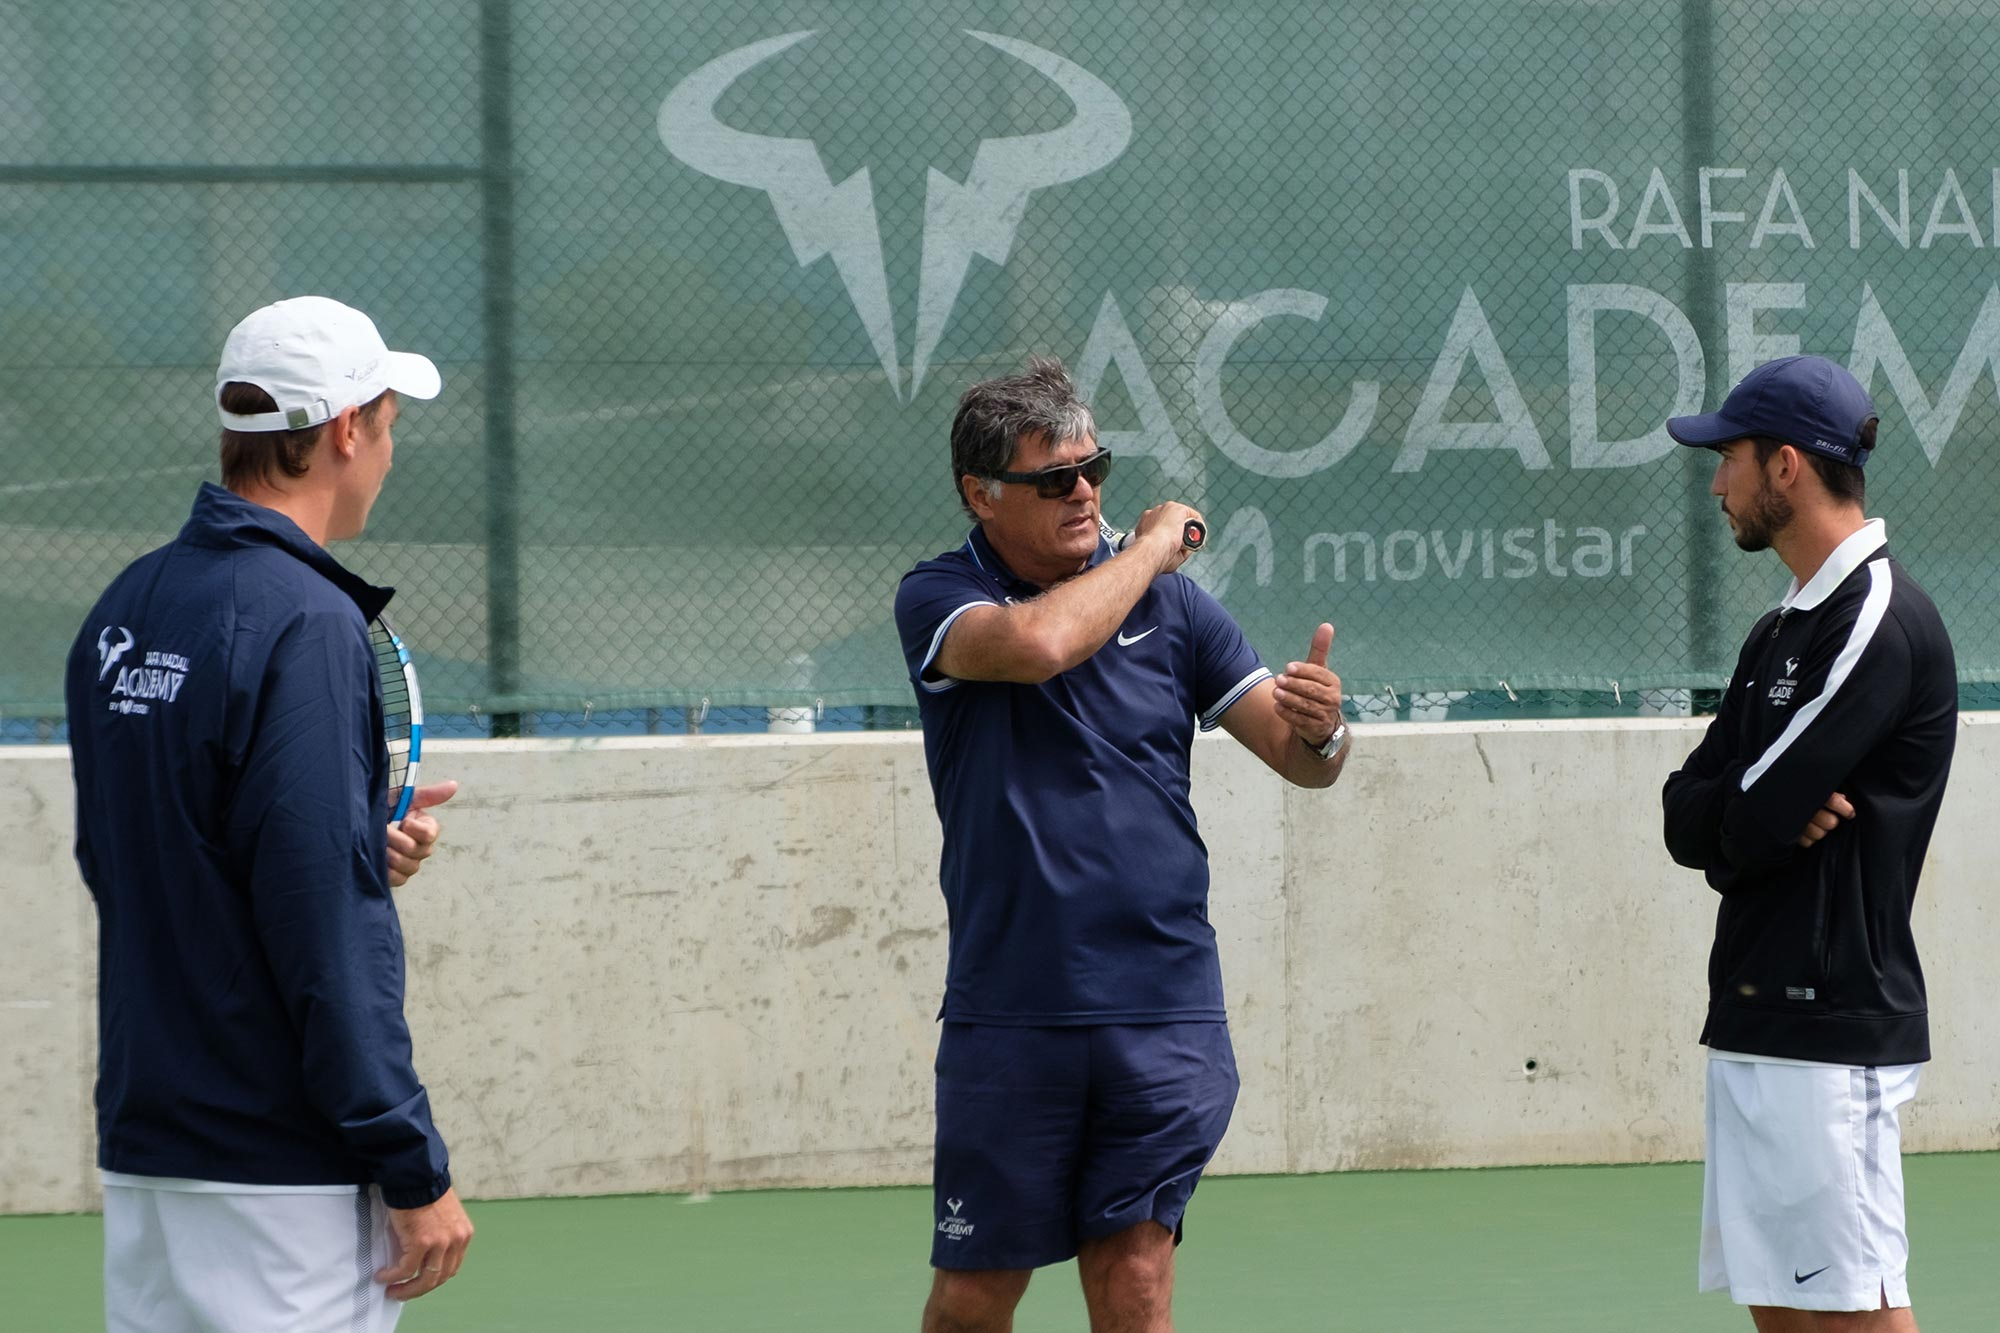 THE RAFA NADAL ACADEMY ANNOUNCES ELITE TENNIS CAMPS IN LOS ANGELES